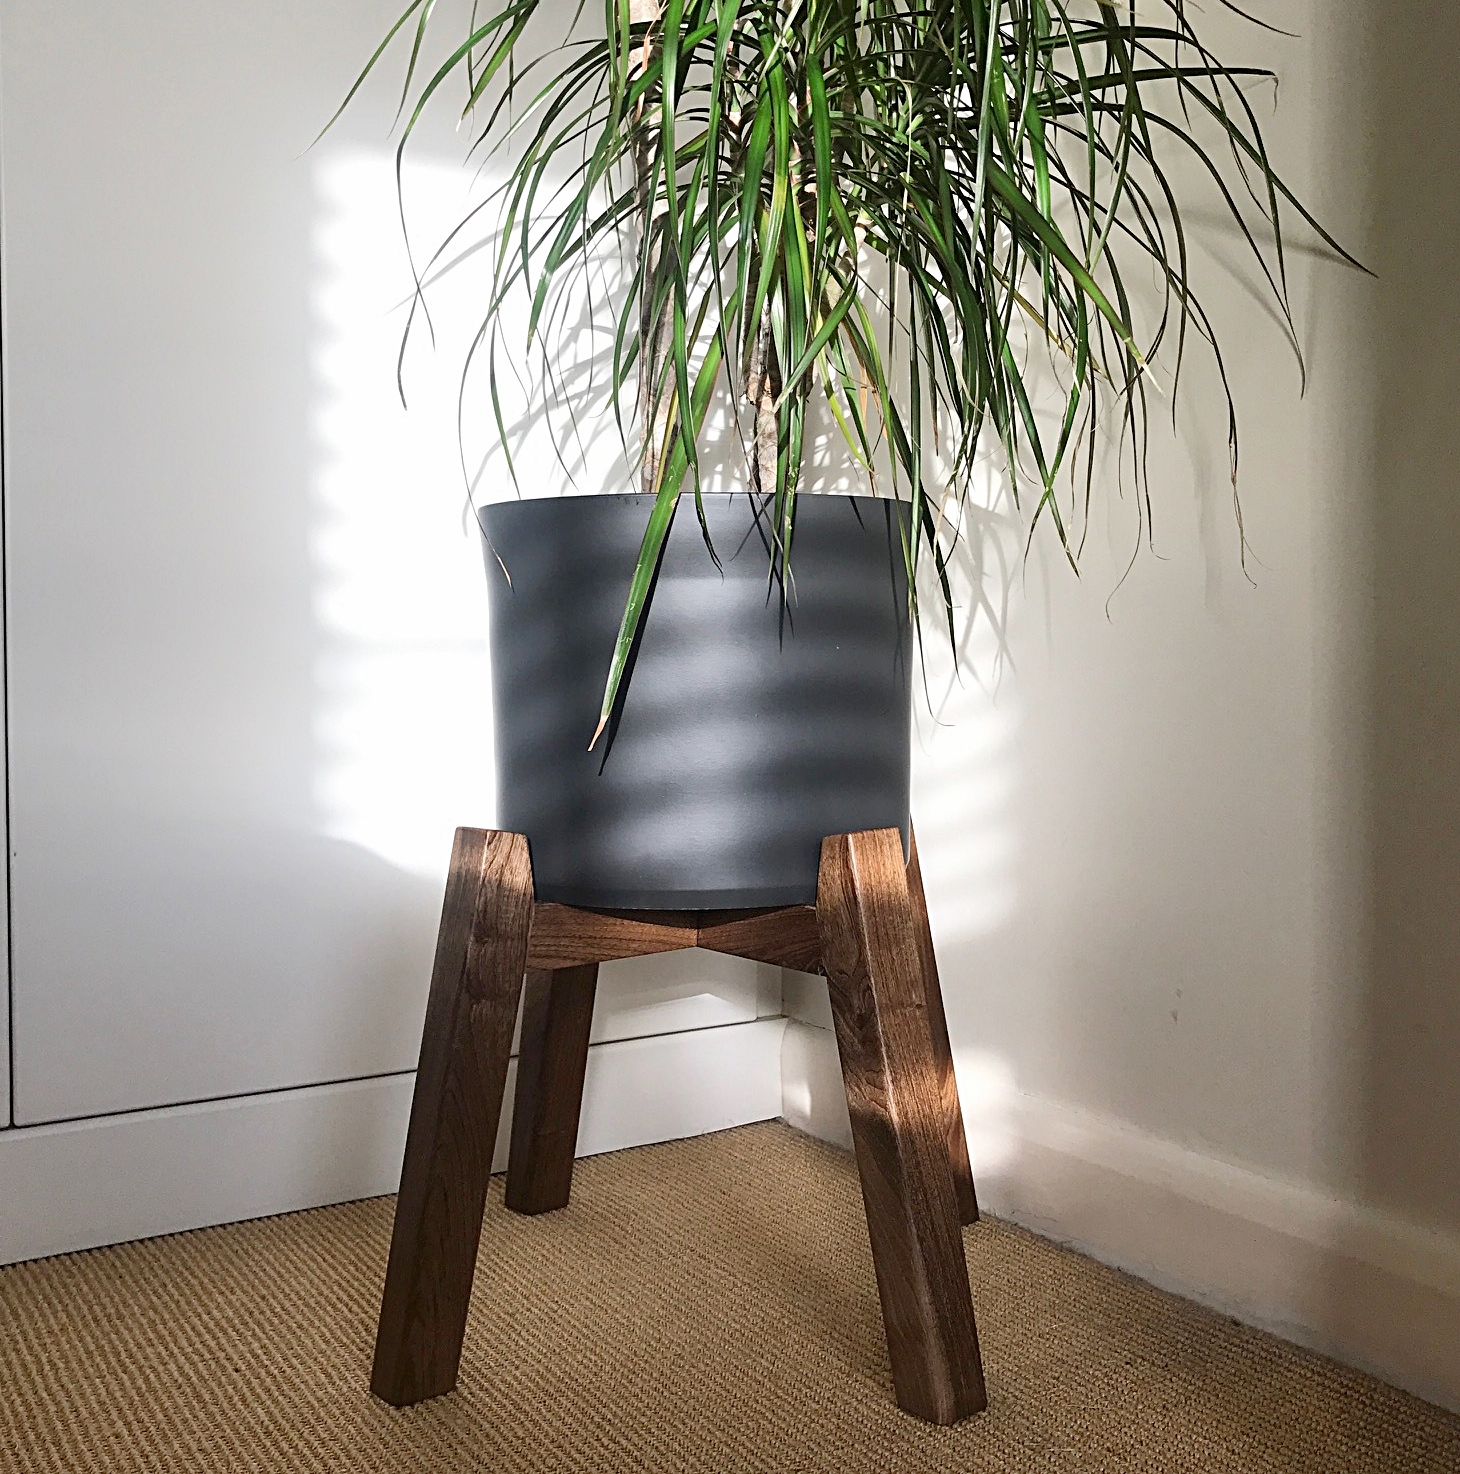 Collaboration - Whilst production is down to me, the design process should be a collaboration between myself and the customer. This plant stand was inspired by one found in a magazine by the customer.  I designed the structure based on the customers brief and the existing plant pot.  The English walnut used works beautifully with the black ceramic pot.